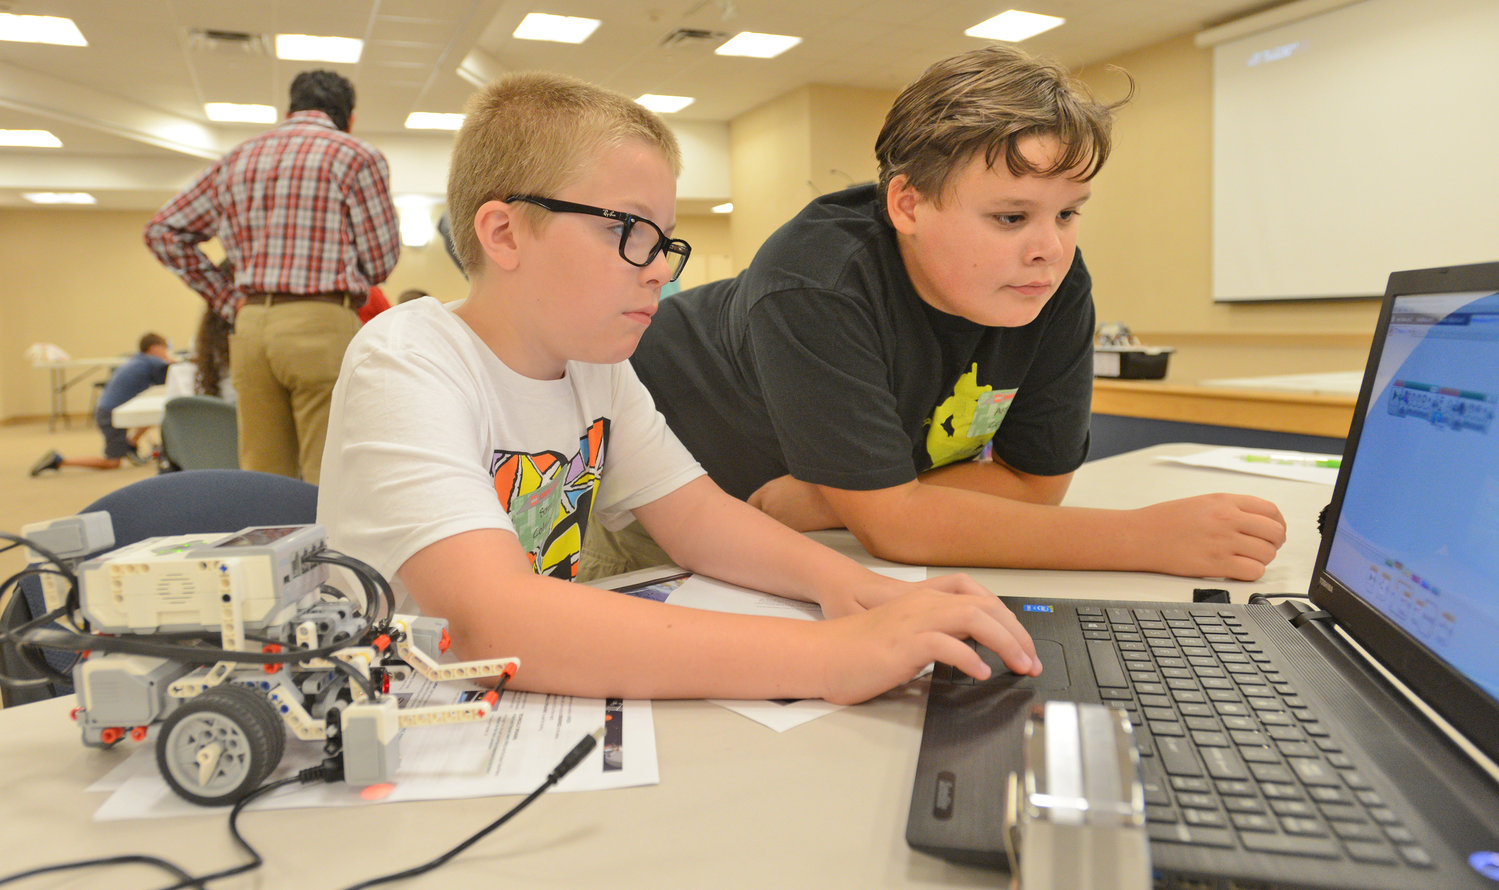 CHECKING THE PROGRAMMING — Denti Elementary School students Sam Colmey and Aidan Curry are at the keyboard to program their Lego robot for tasks to perform, during a STEM (science, technology, engineering, math) Outreach Program camp Wednesday at Griffiss Institute. The week-long Lego robotics camp, in conjunction with Rome Lab which is formally called the Air Force Research Laboratory Information Directorate, includes students in grades 5-8 who are learning how to build and program robots.